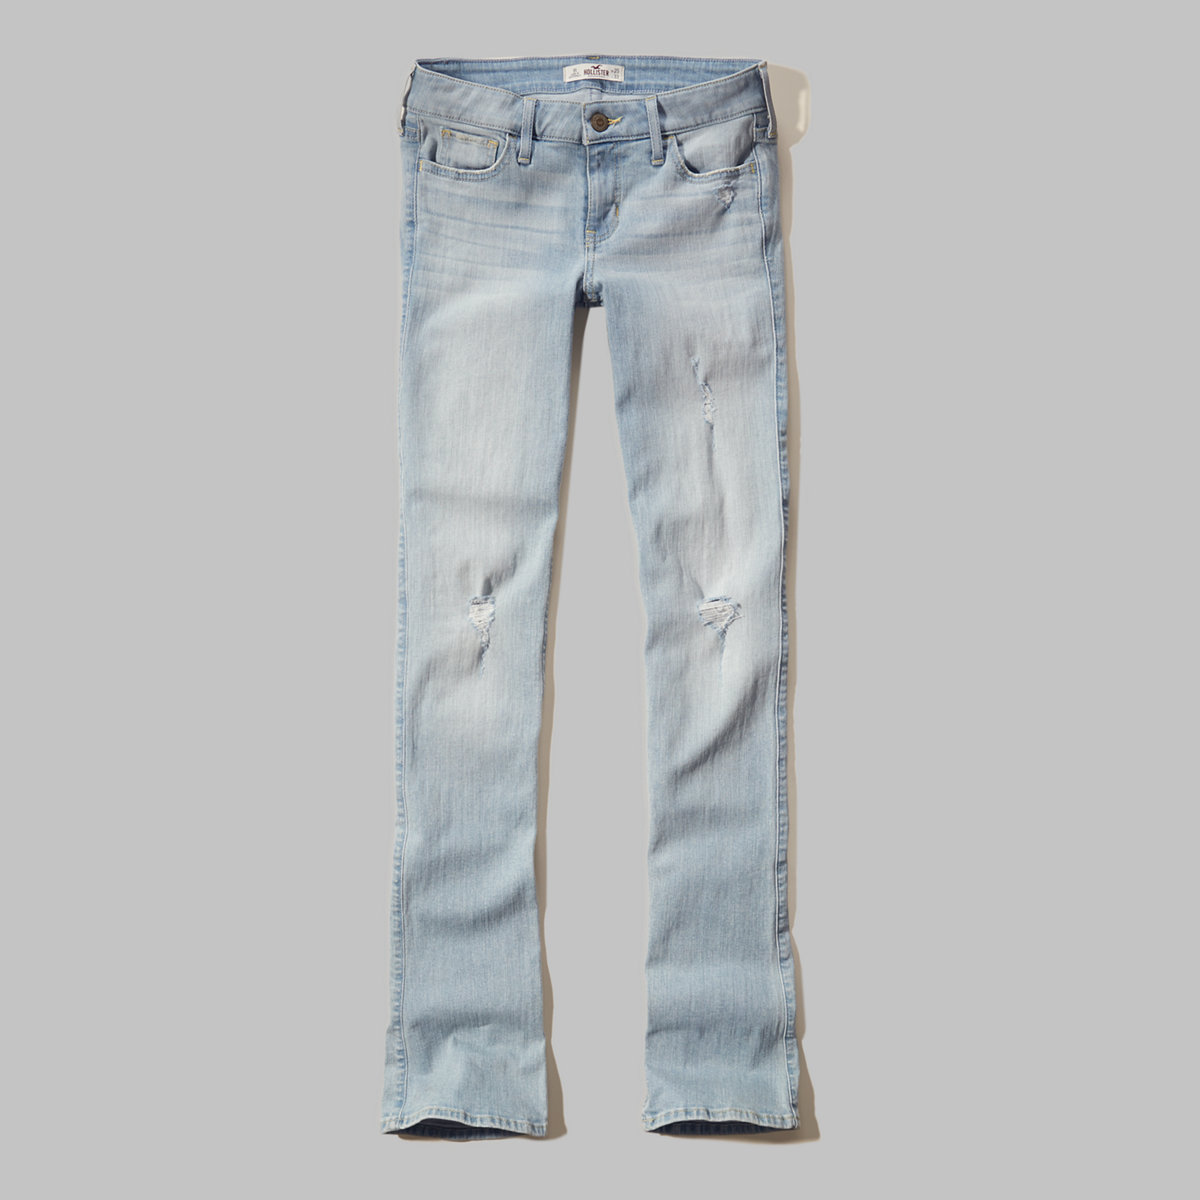 Hollister Taylor Boot Jeans